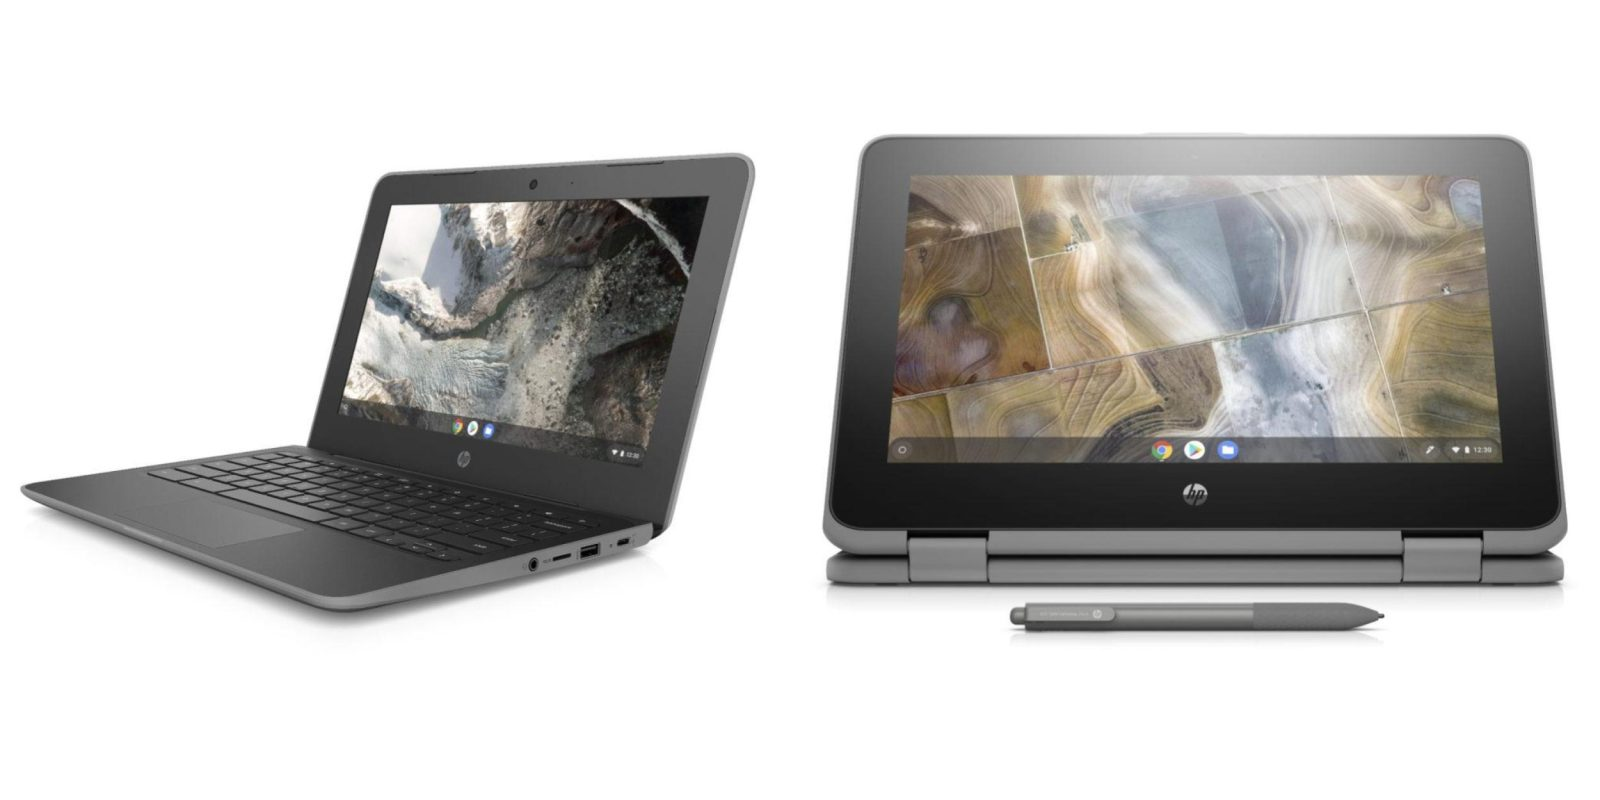 QnA VBage HP announces education-focussed Chromebook 11 G7 EE and x360 11 G2 EE